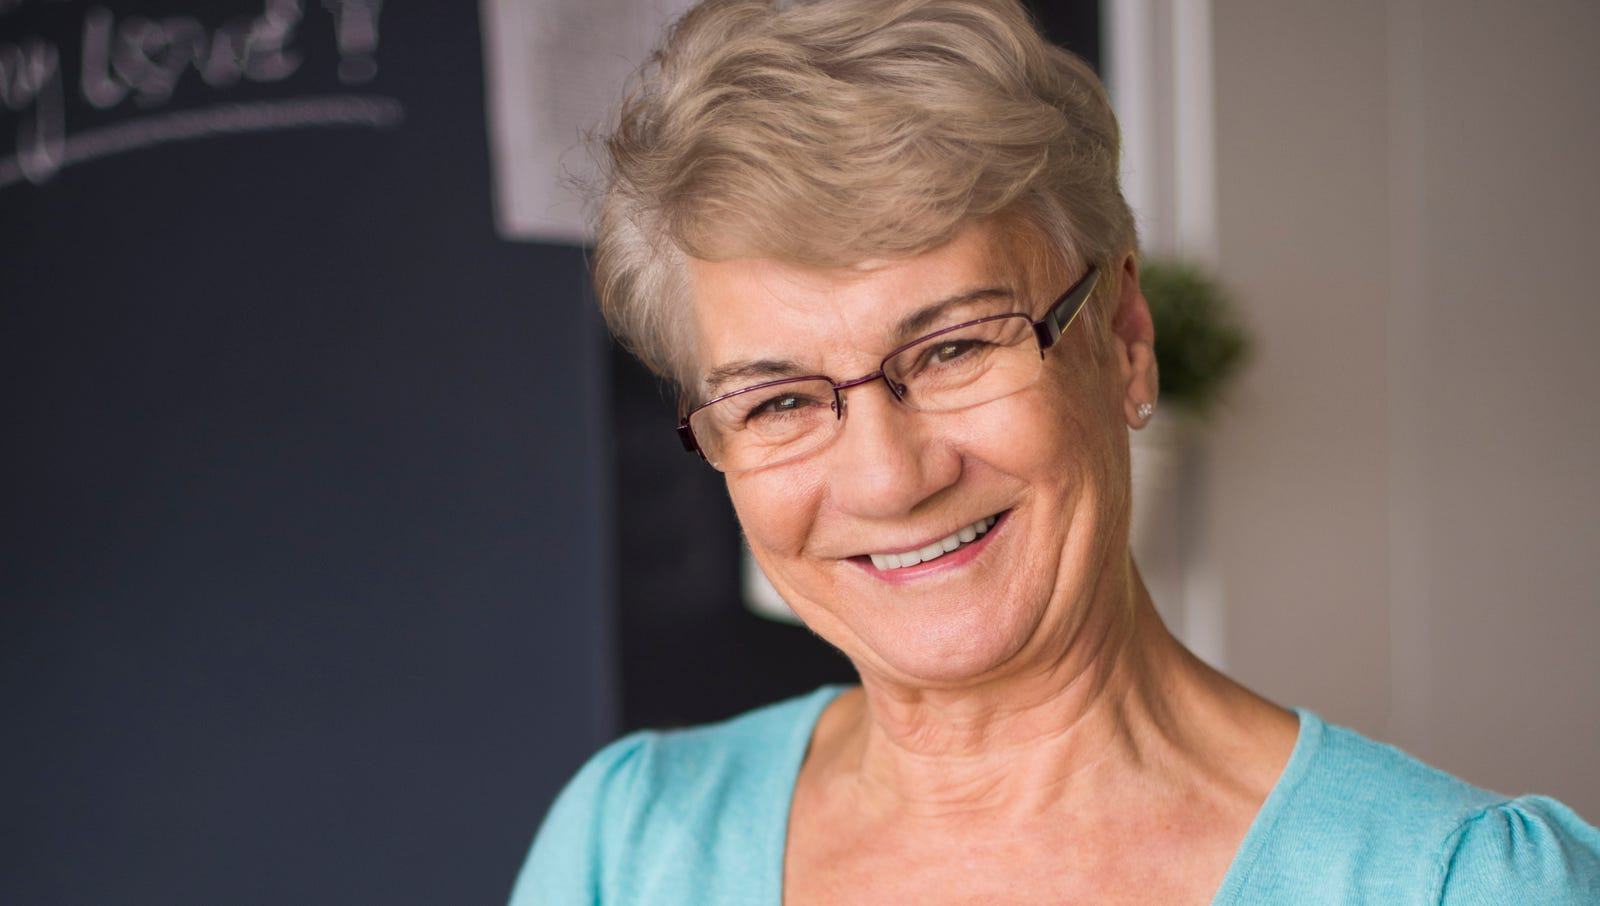 Grandma Happy To Babysit While Couple Desperately Attempts To Rekindle Relationship